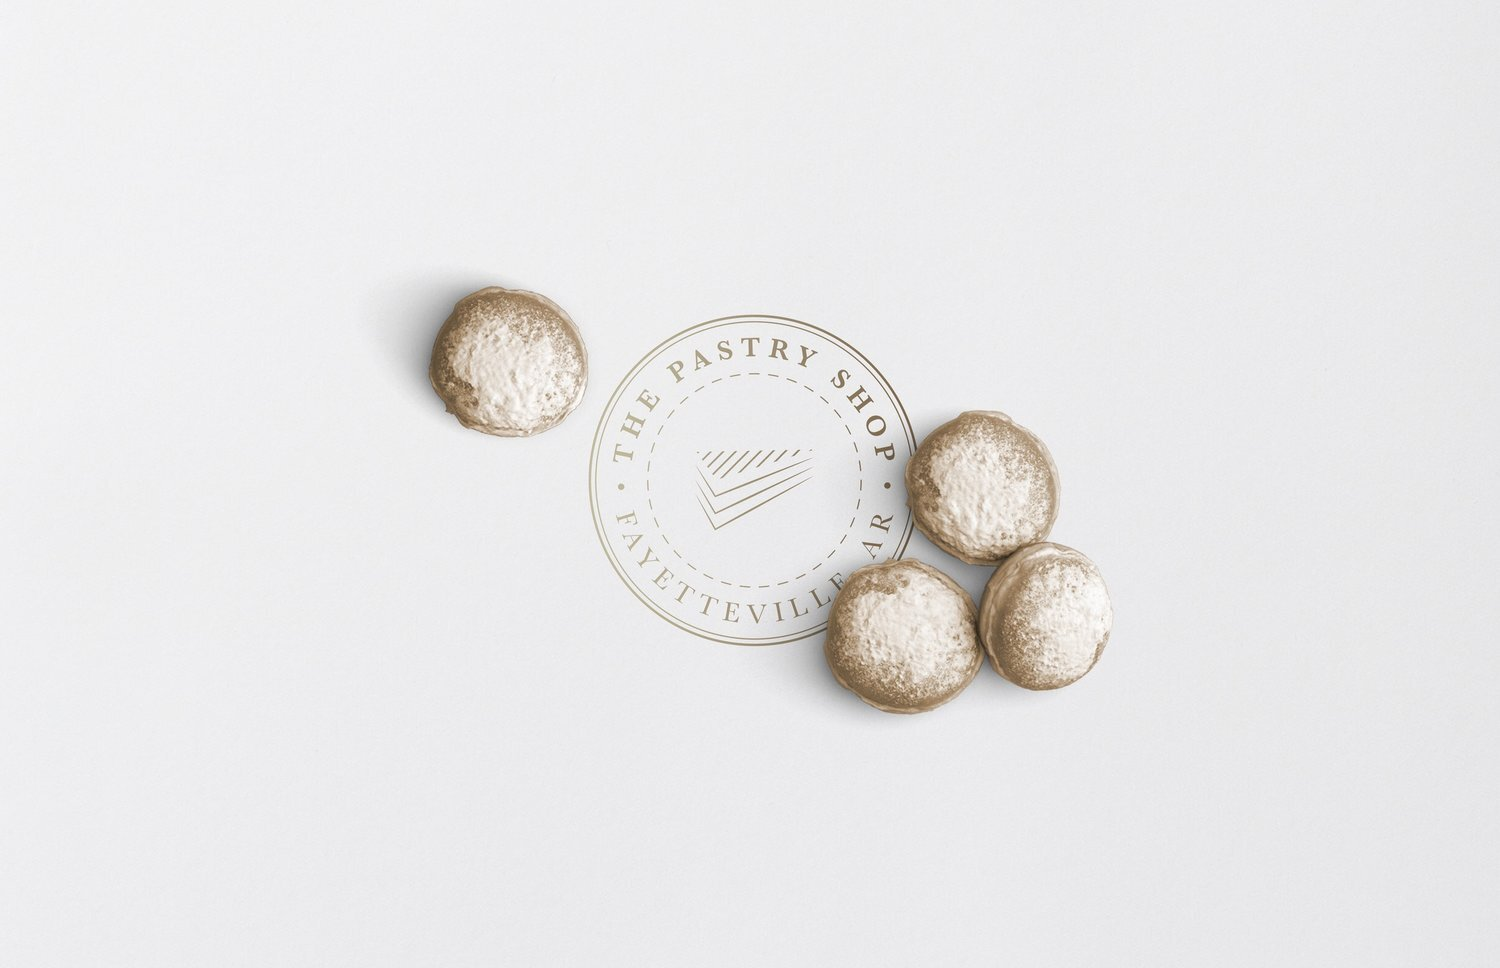 pastry+shop+logo_cover+page.jpg